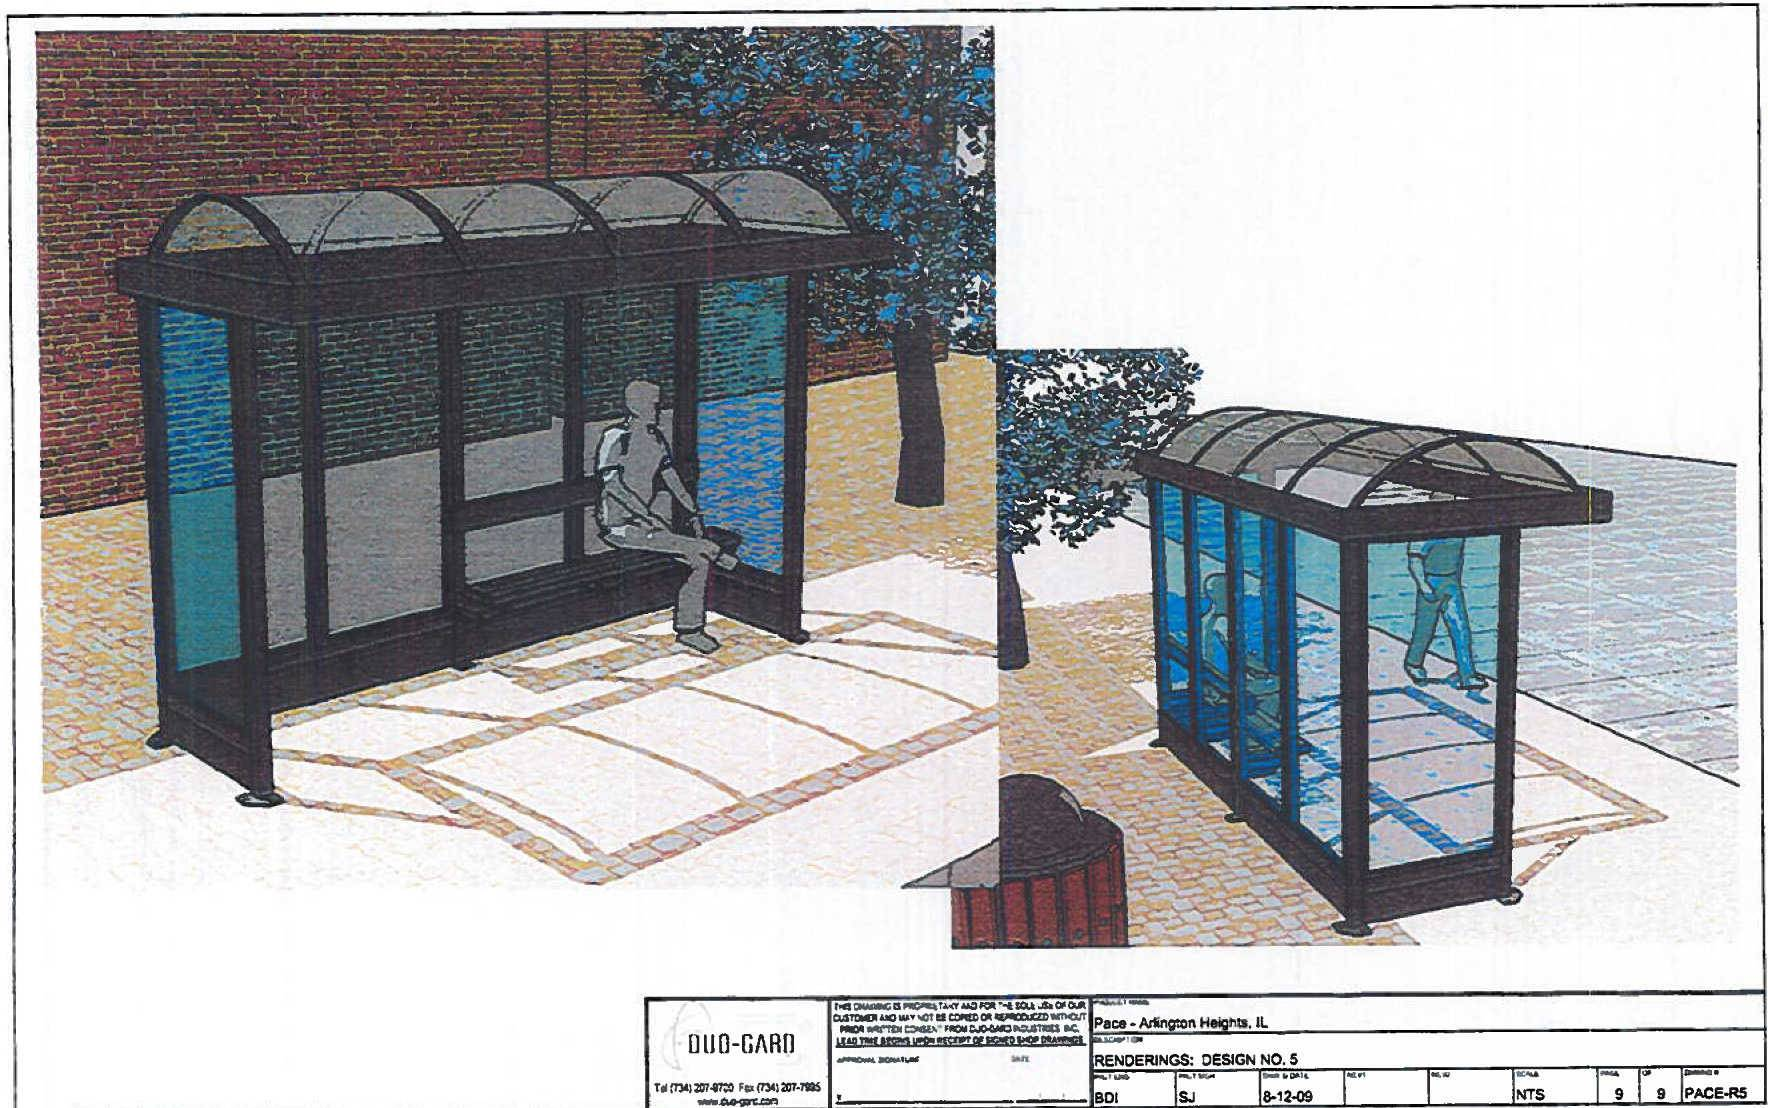 This sketch shows the proposed bus shelter on Miner Street in downtown Des Plaines.